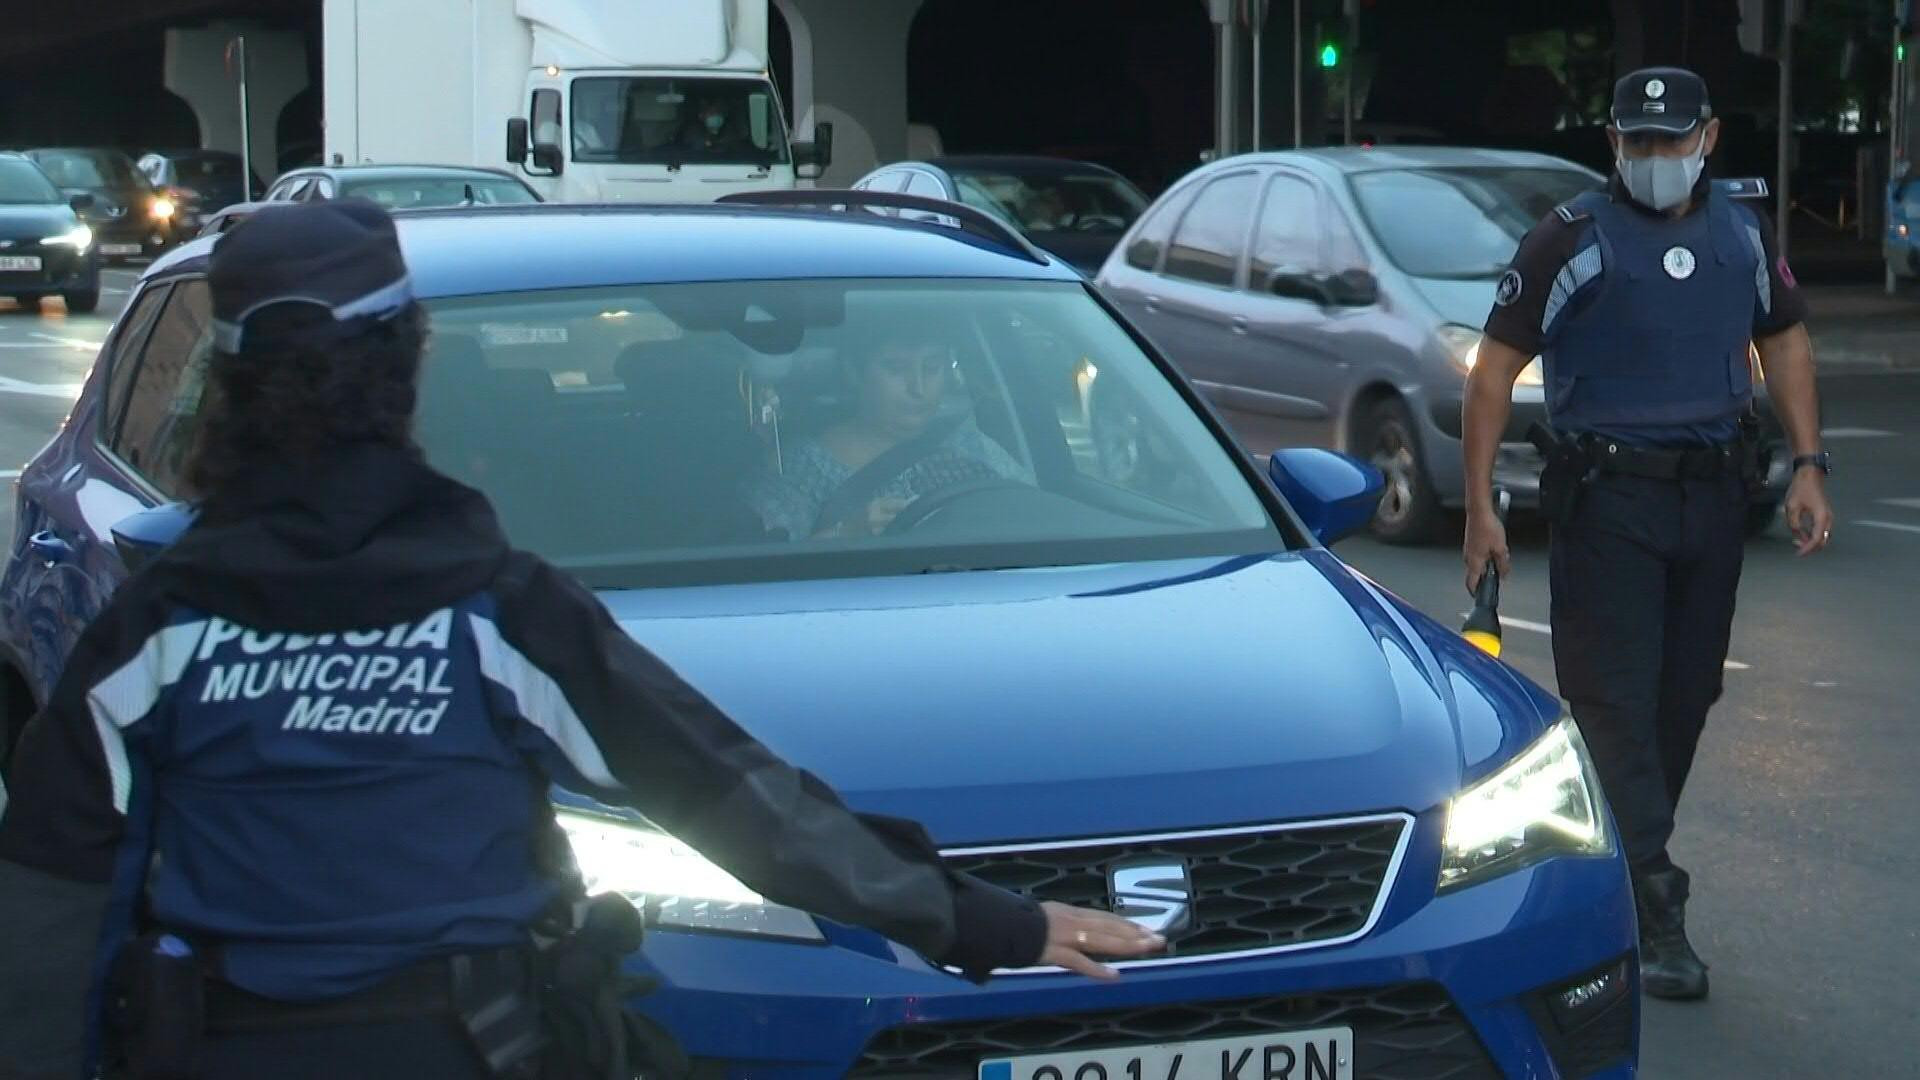 Police officers control cars as Madrid begins partial virus lockdown [Video]